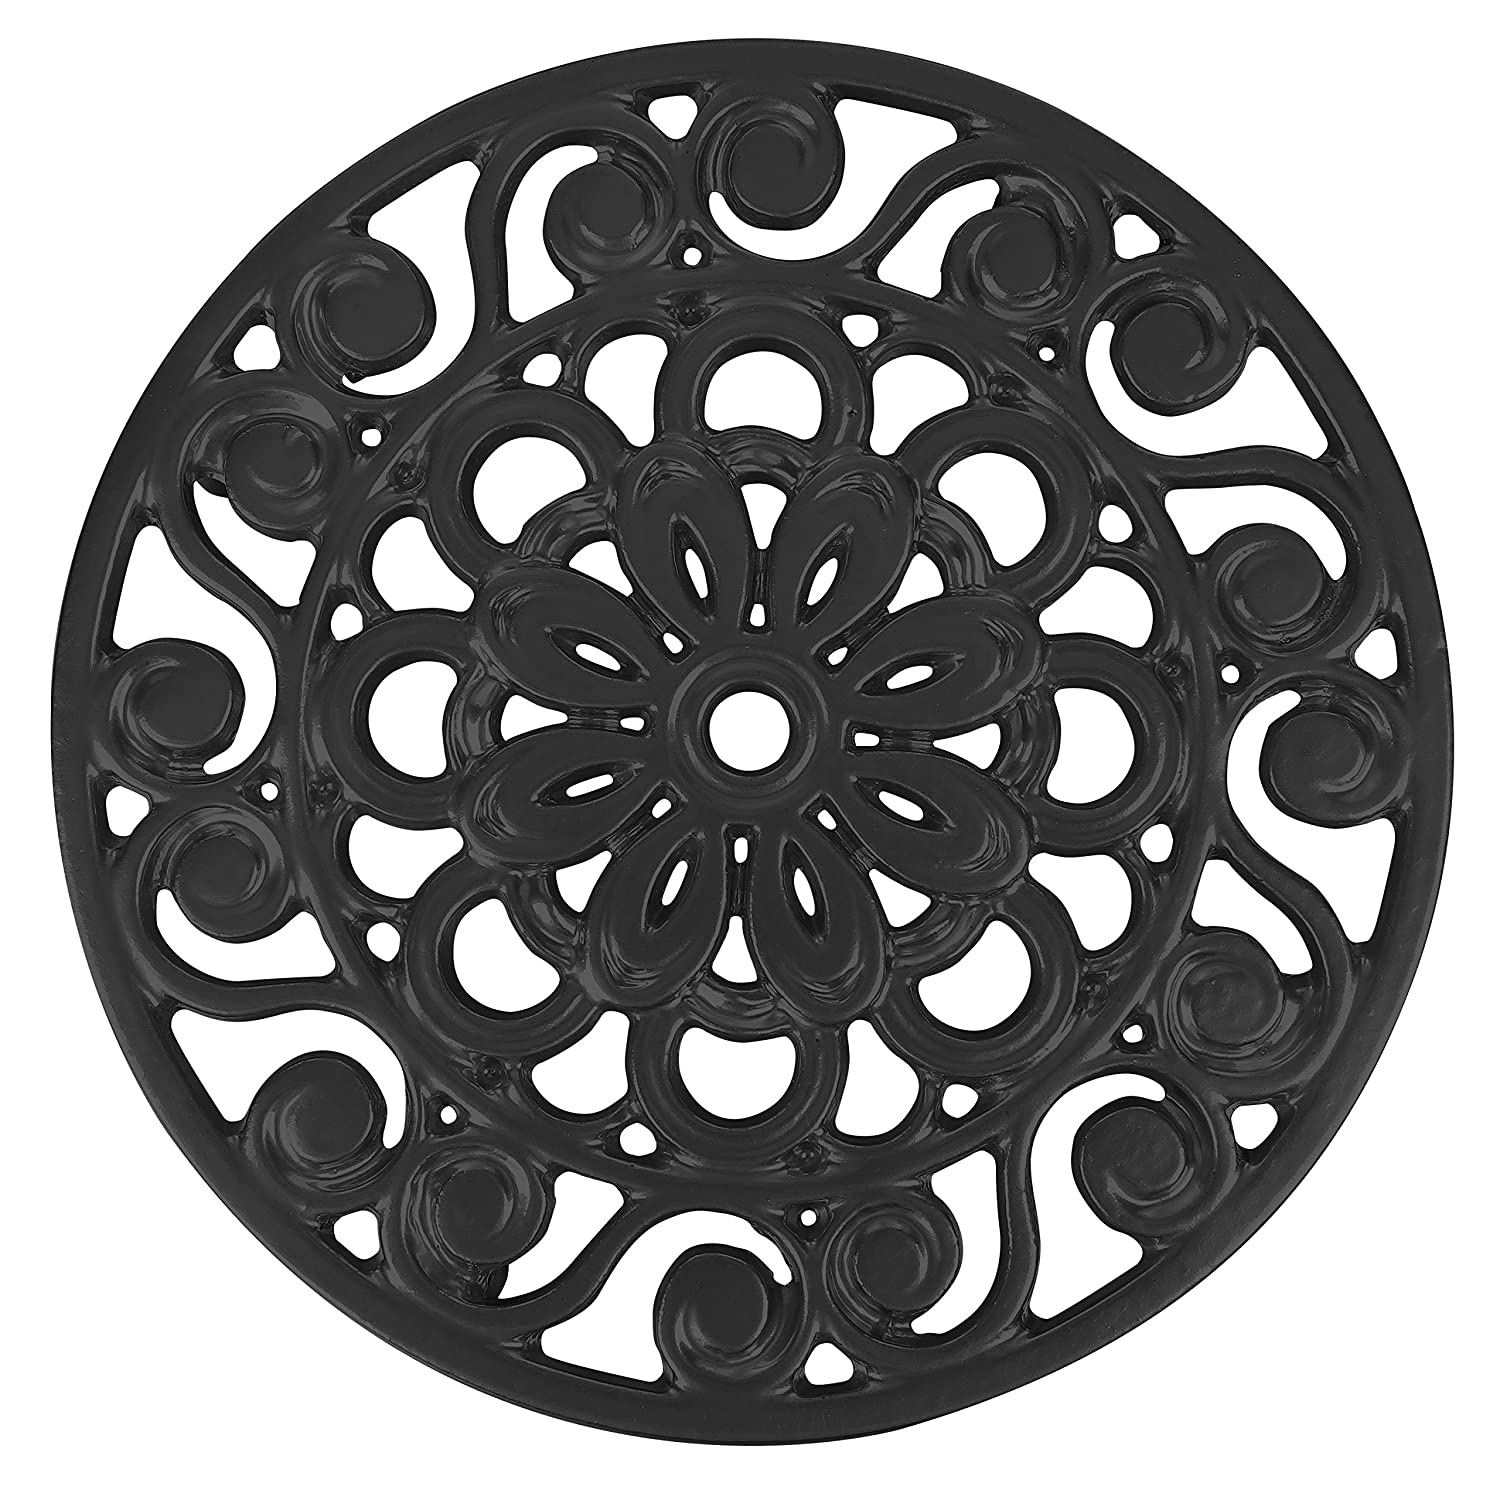 Trademark Innovations TRIV-METAL-BL Decorative Cast Iron Metal Trivet, Black